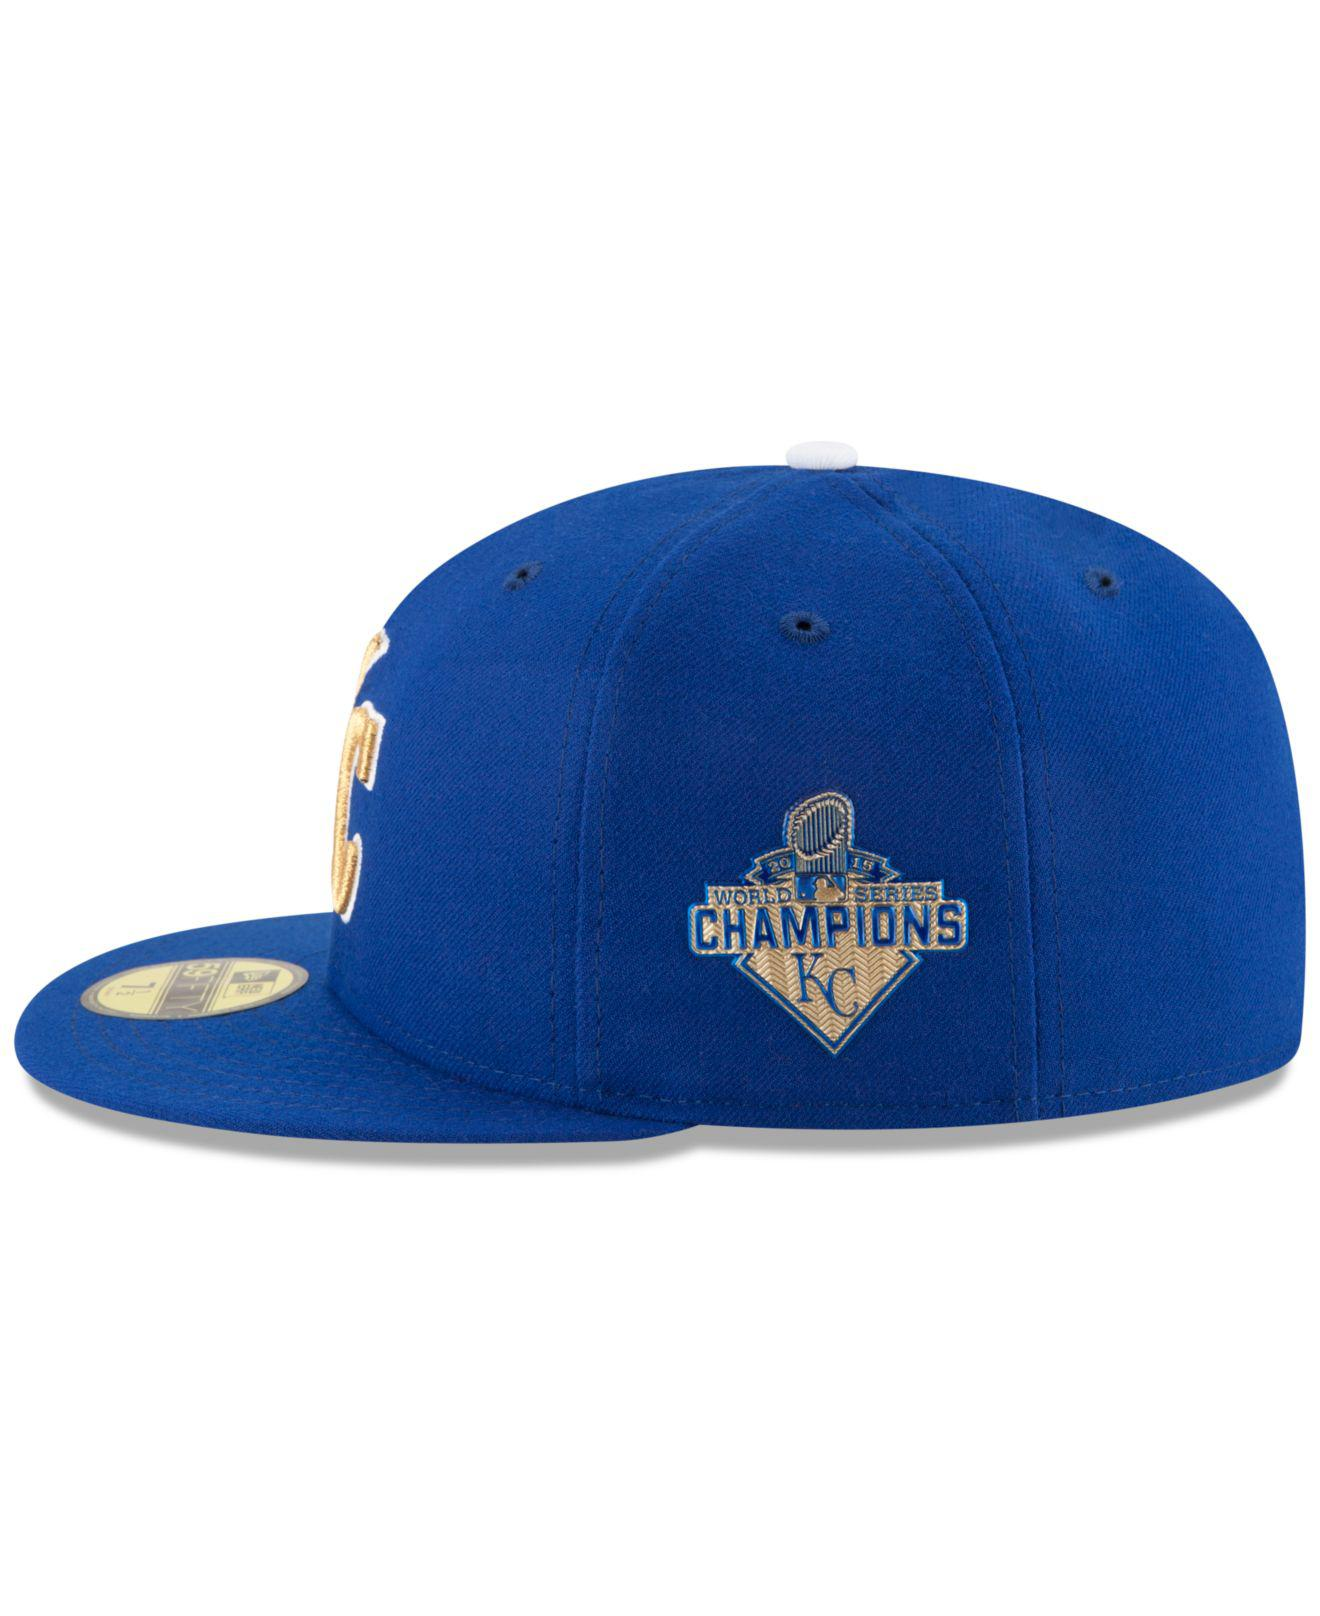 2ed08f7ffd1 ... usa kansas city royals 2015 world series commemorative gold ac 59fifty  cap for men. view ...